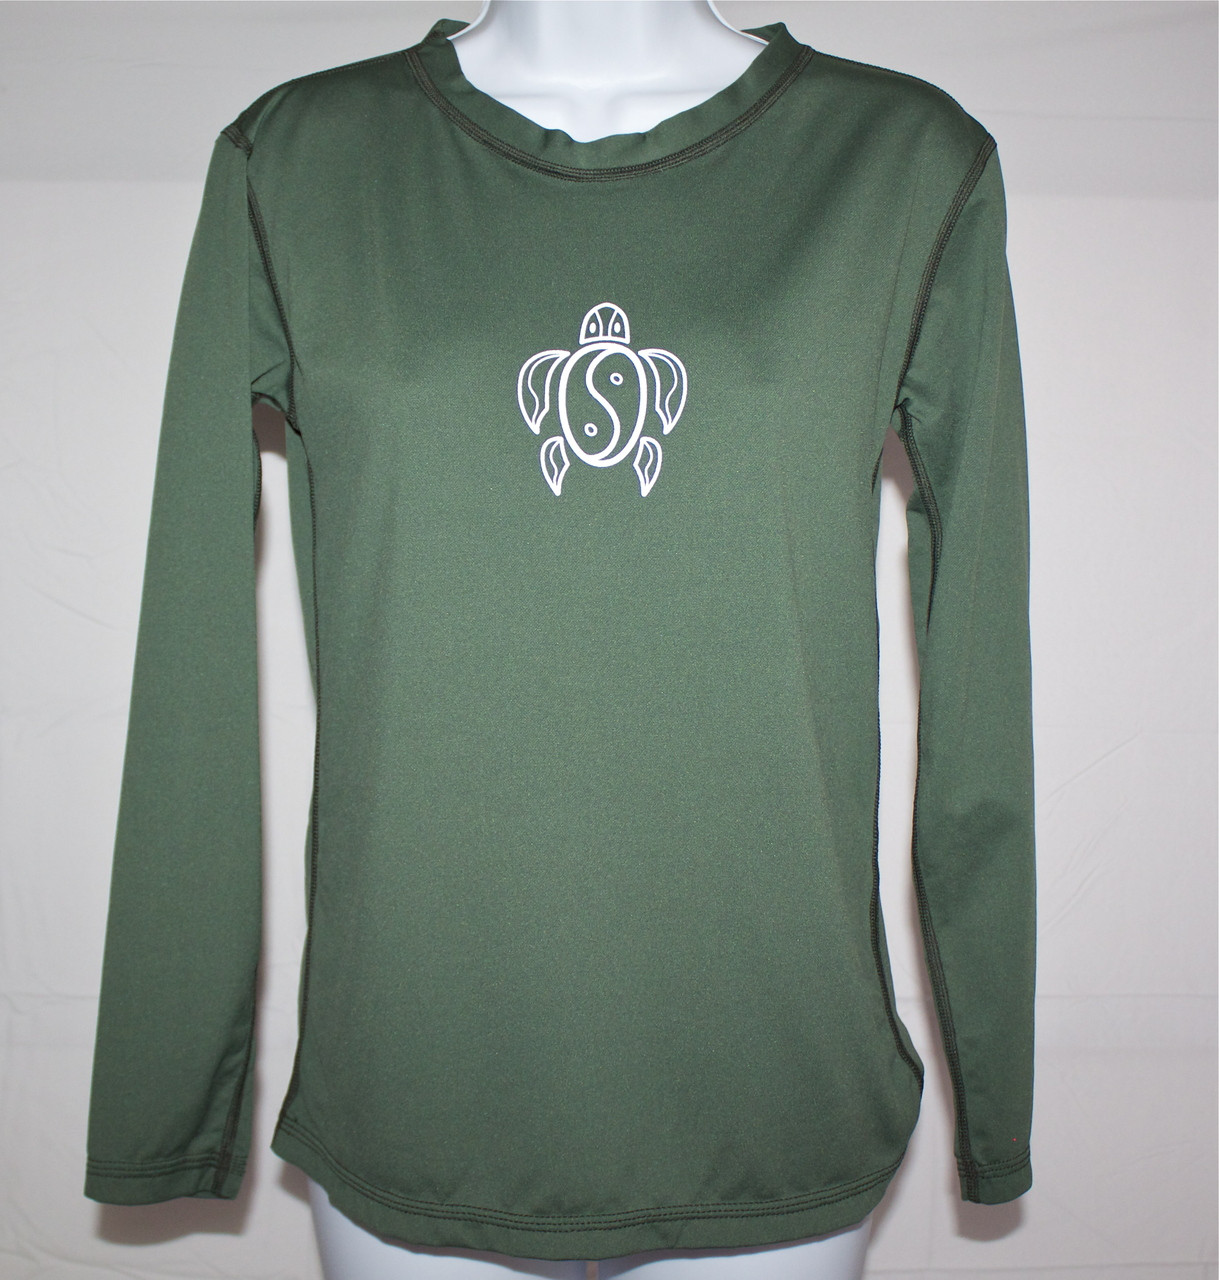 e18b99af9 ... Women's Long Sleeve Olive Honu UV Shirt. Image 1. Image 1. Image 2.  Image 3. See 2 more pictures